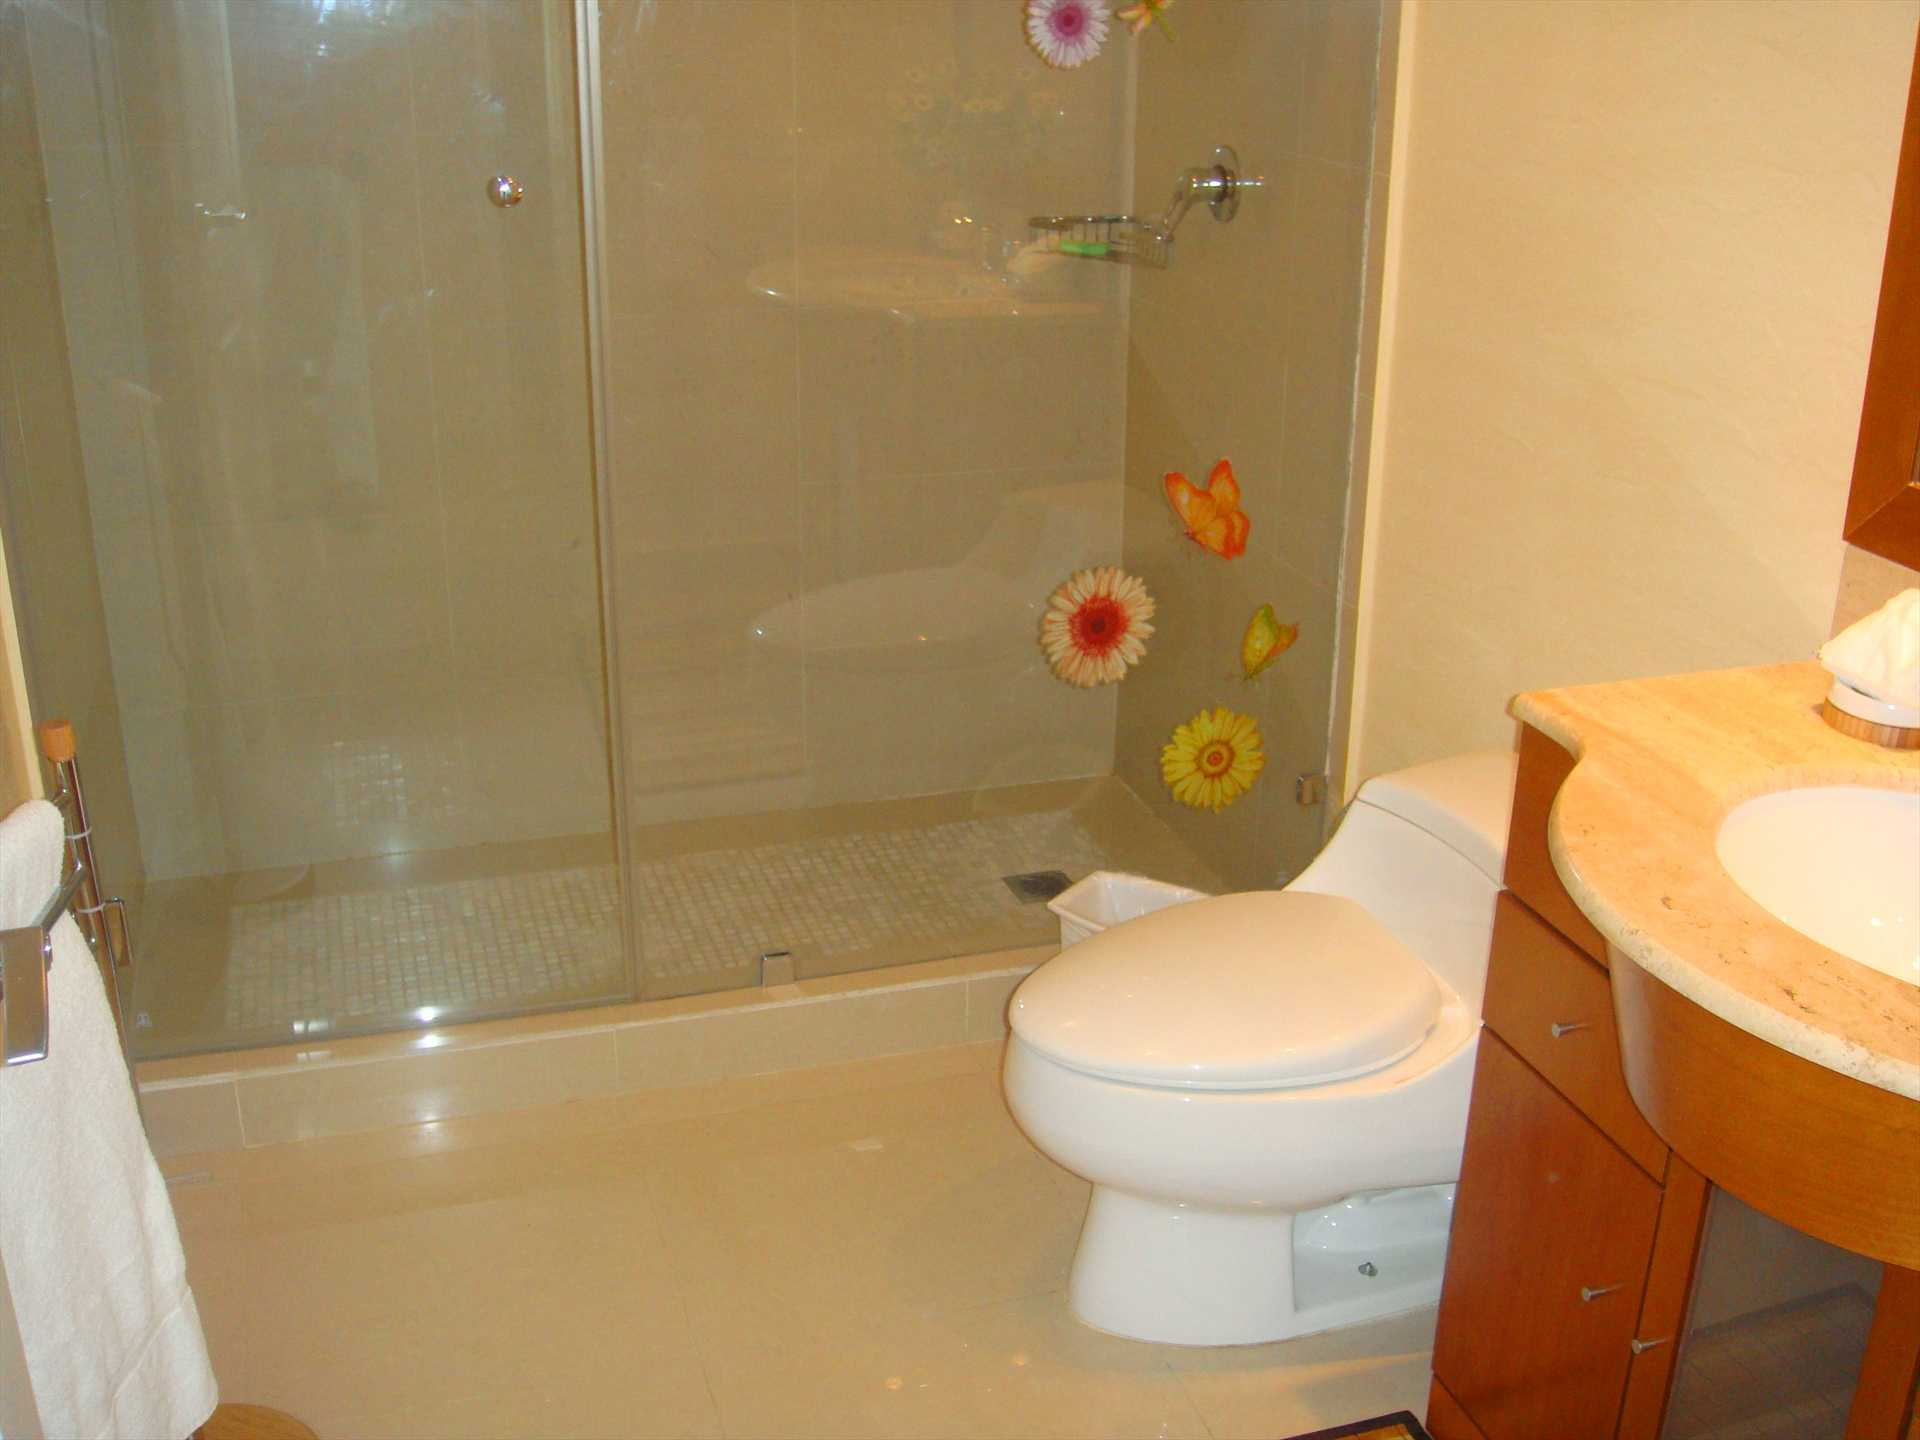 All three bathrooms are spacious and have glass door enclosed showers.